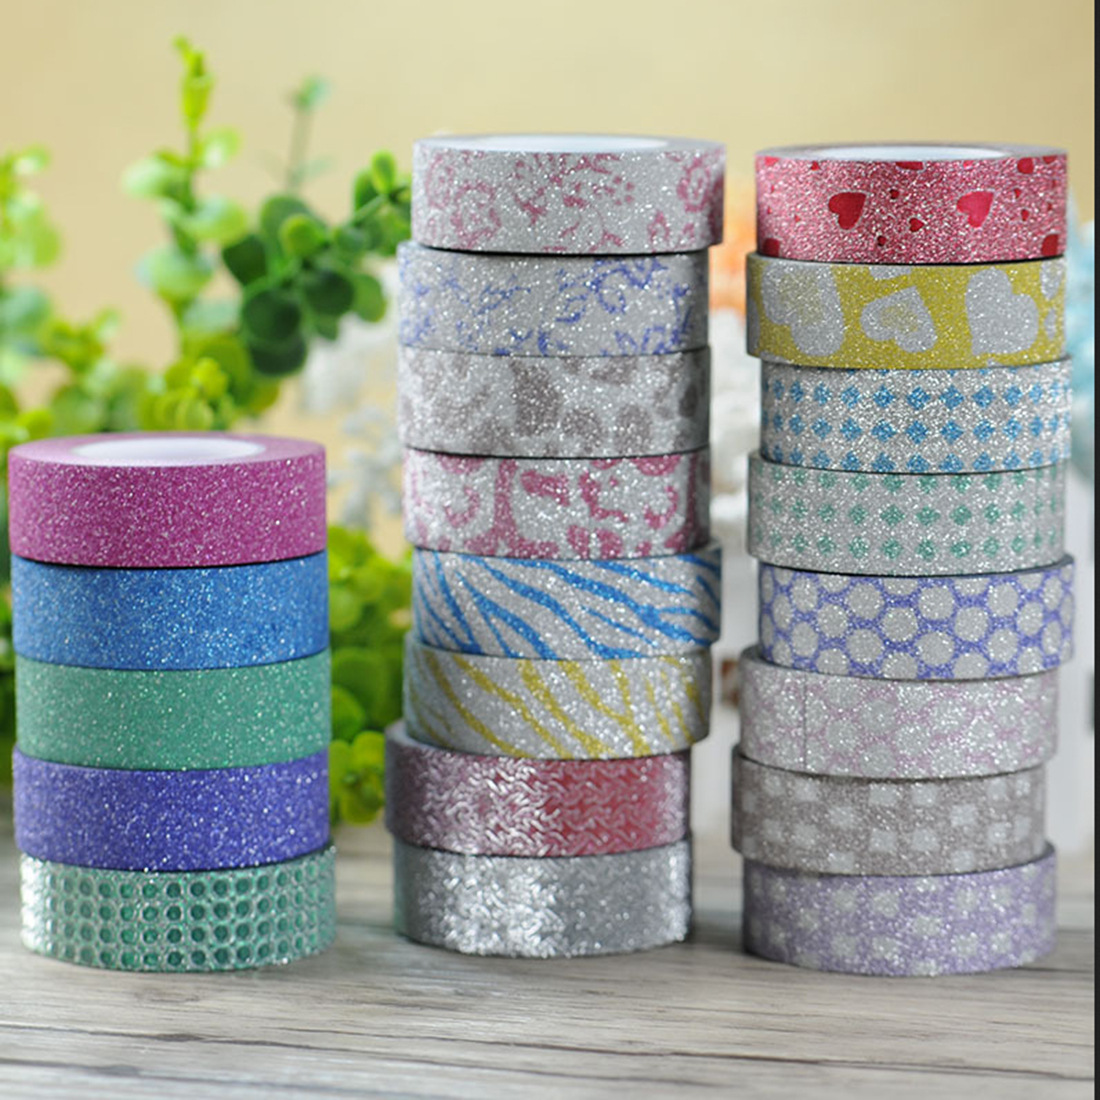 How to scrapbook with glitter - 1pcs Shimmering Powder Glitter Diy Decorative Scrapbooking Sticky Paper Masking Adhesive Tape Random Color